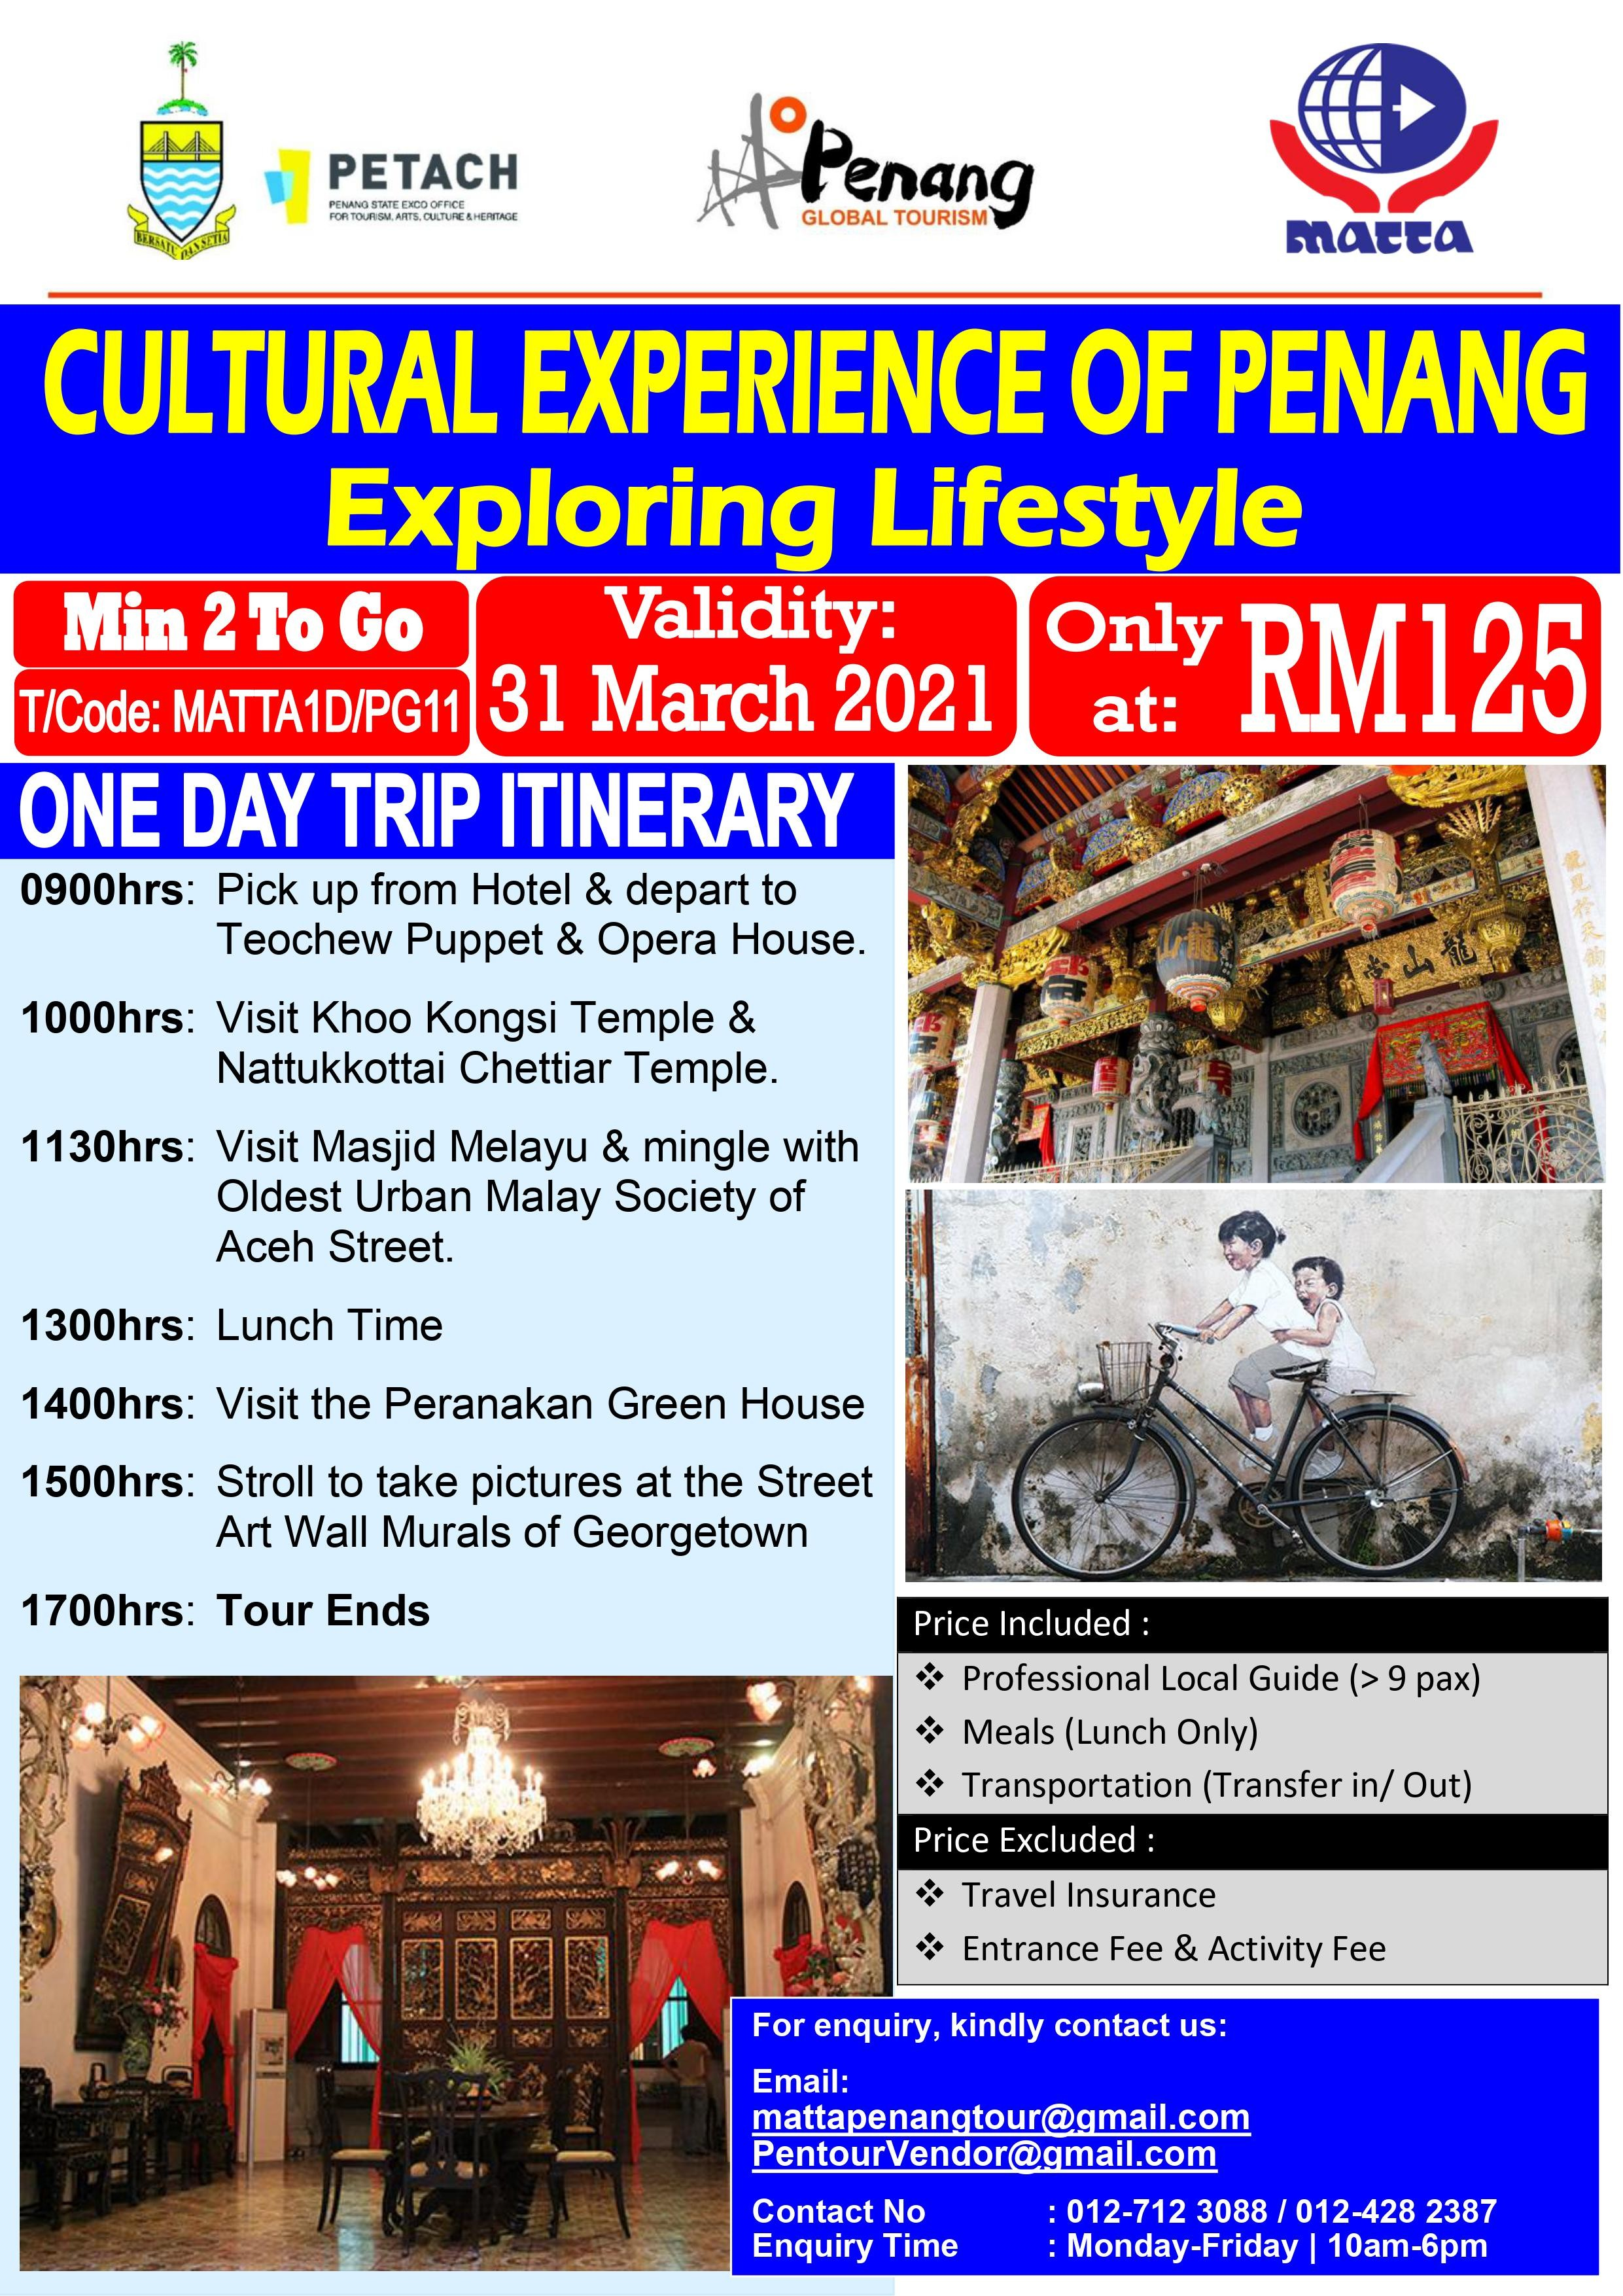 Cultural Experience, Exploring Lifestyle - 1 Day